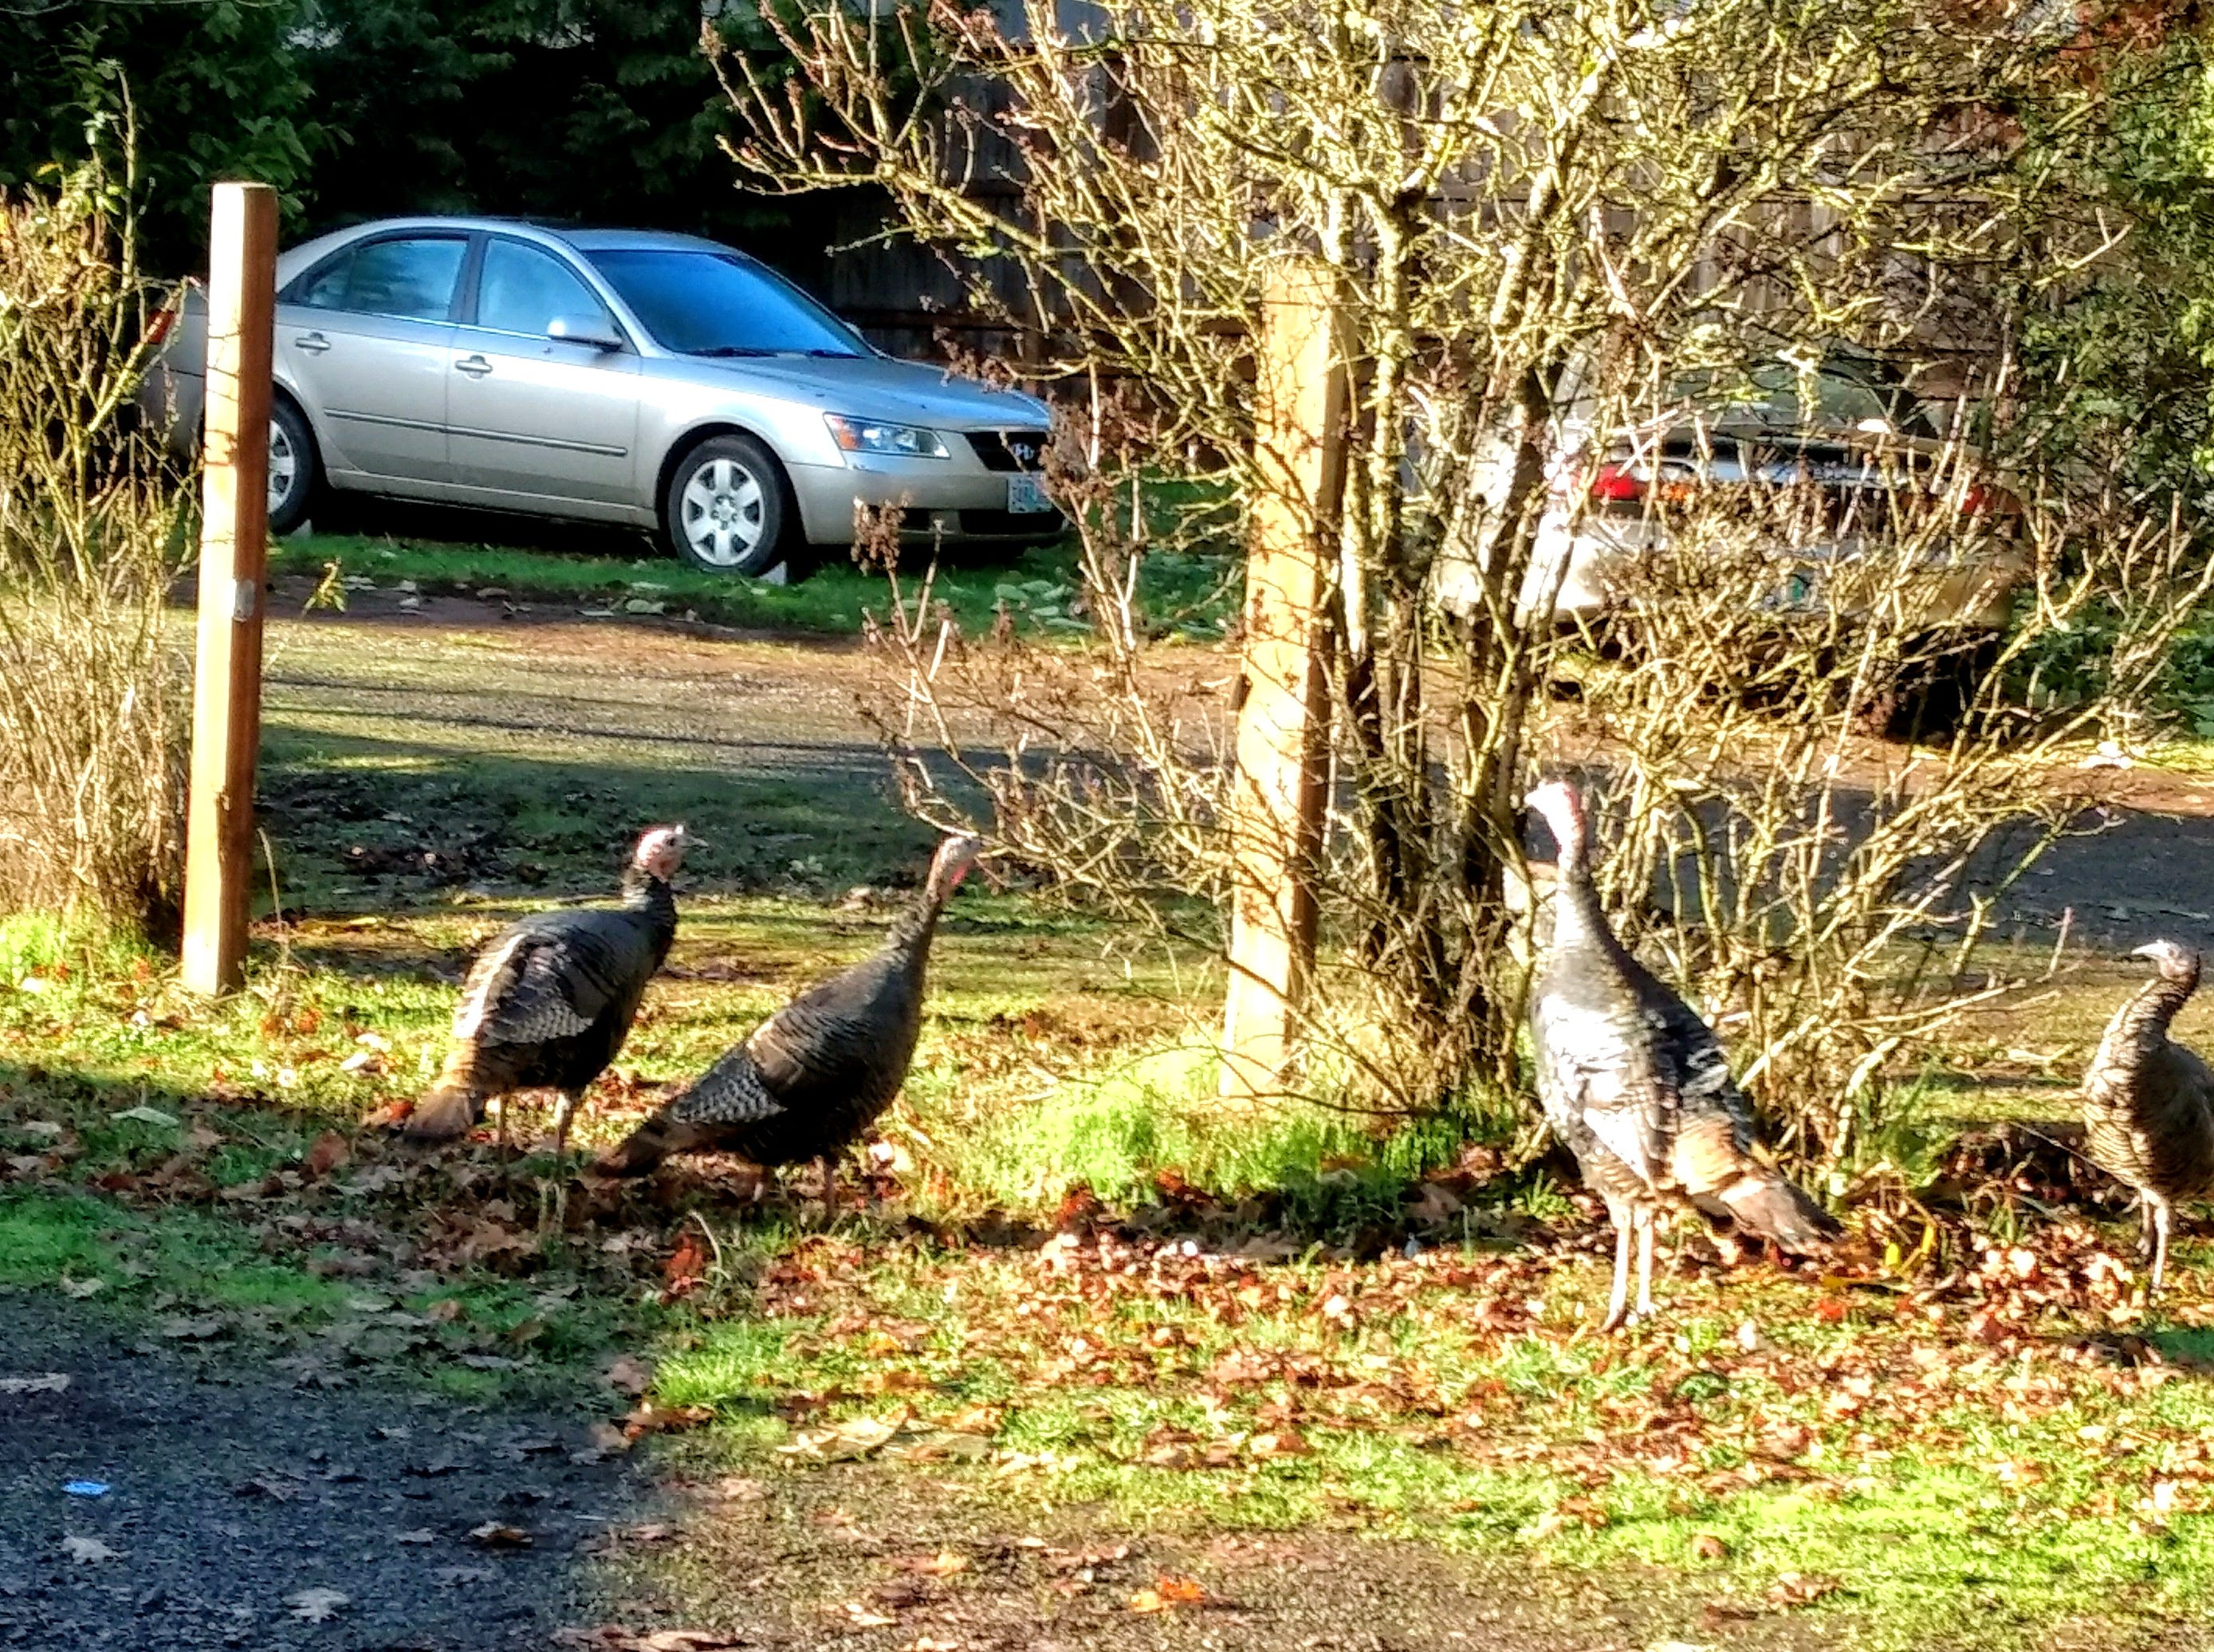 Harry's flock of turkeys seemed to be rapt by the dog's high-pitched keening. The mostly Jack Russell terrier seemed to have a morning snack on his mind.